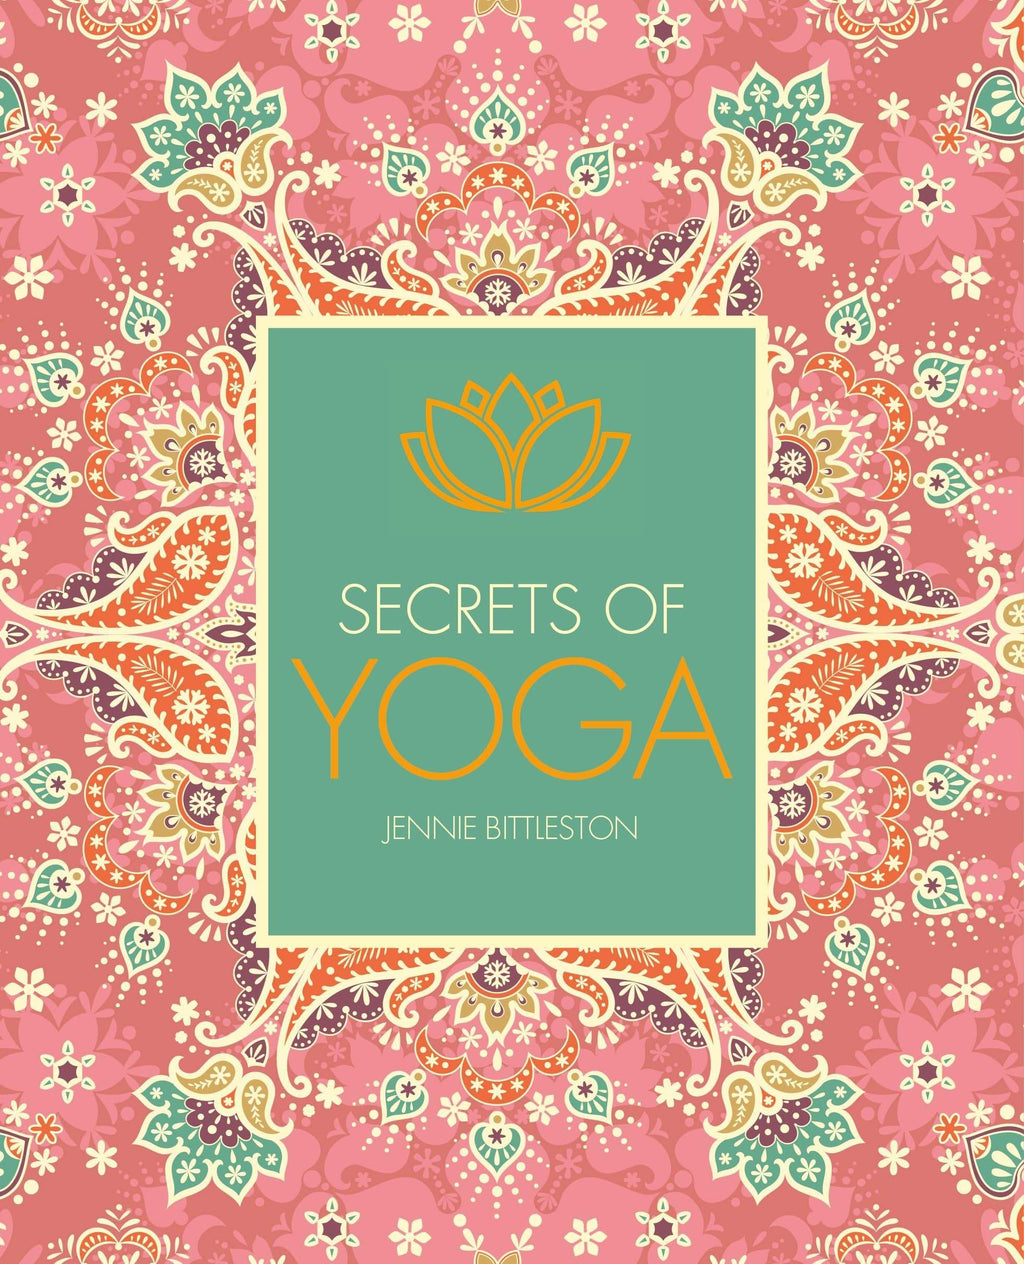 Marissa's Books & Gifts, LLC 9781782404644 Secrets of Yoga